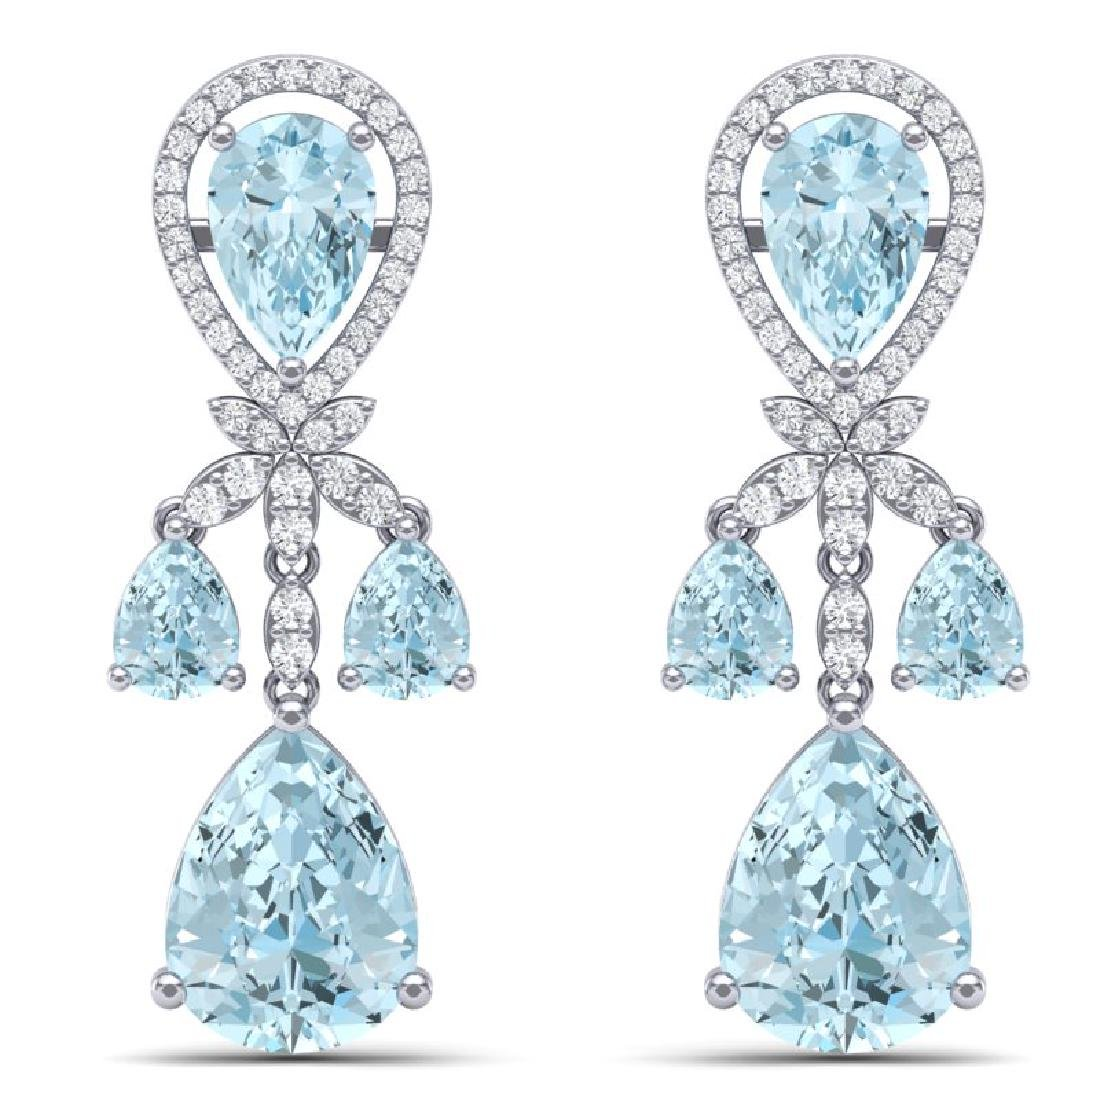 40.01 CTW Royalty Sky Topaz & VS Diamond Earrings 18K